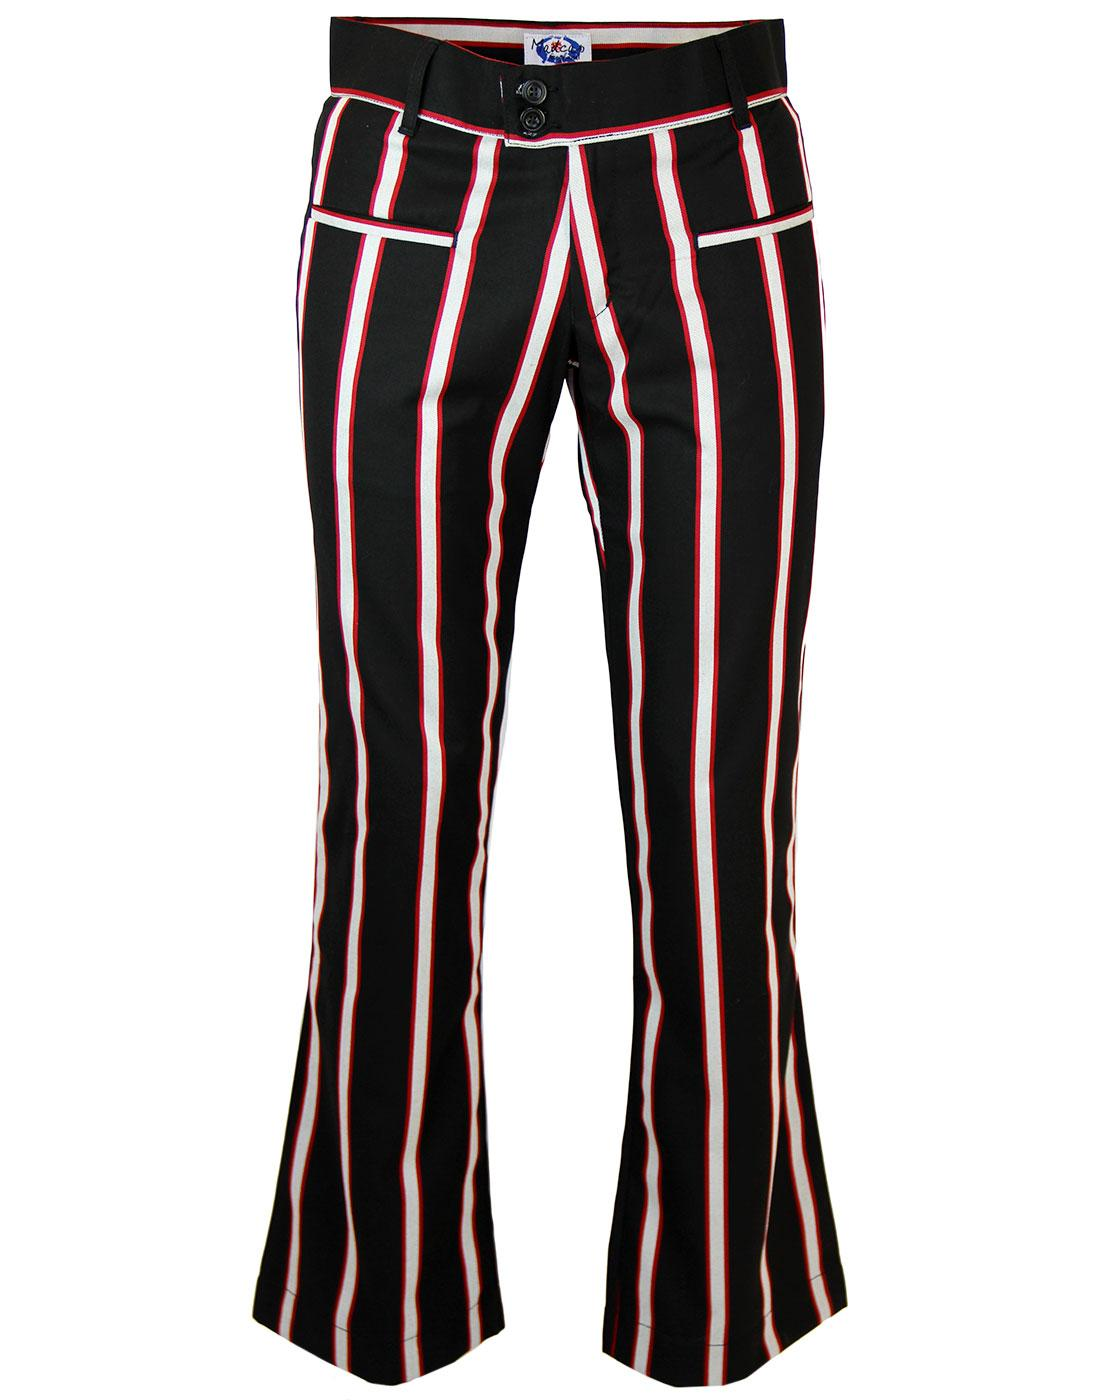 Hapshash MADCAP ENGLAND 60s Mod Bootcut Trousers